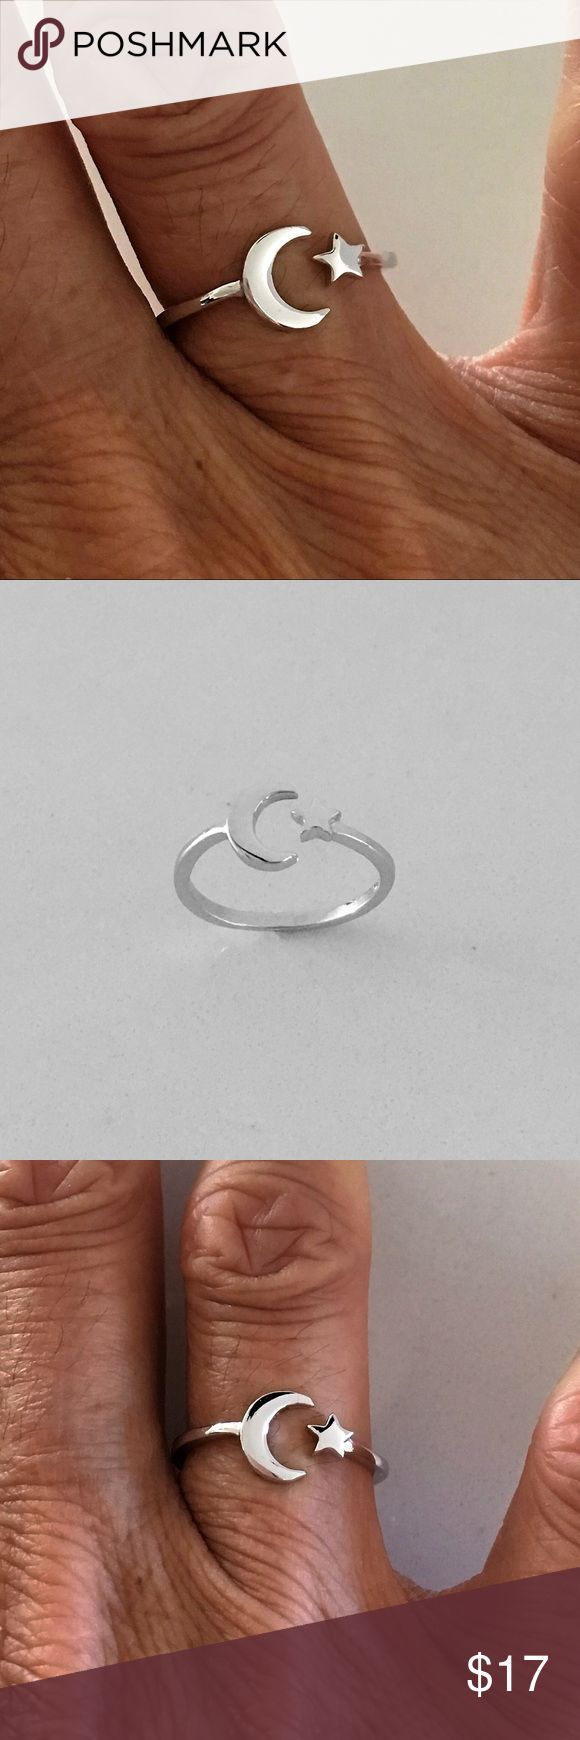 Sterling Silver Moon and Star Ring Sterling Silver Moon and Star Ring, Toe Ring, Midi Ring, Pinky Ring, Index Ring, Thumb Ring, 925 Sterling Silver, Face Height: 8 mm, Finish: High Polish, Rhodium Plated, PLEASE VISIT MY SITE indigoandjade.com Jewelry Rings